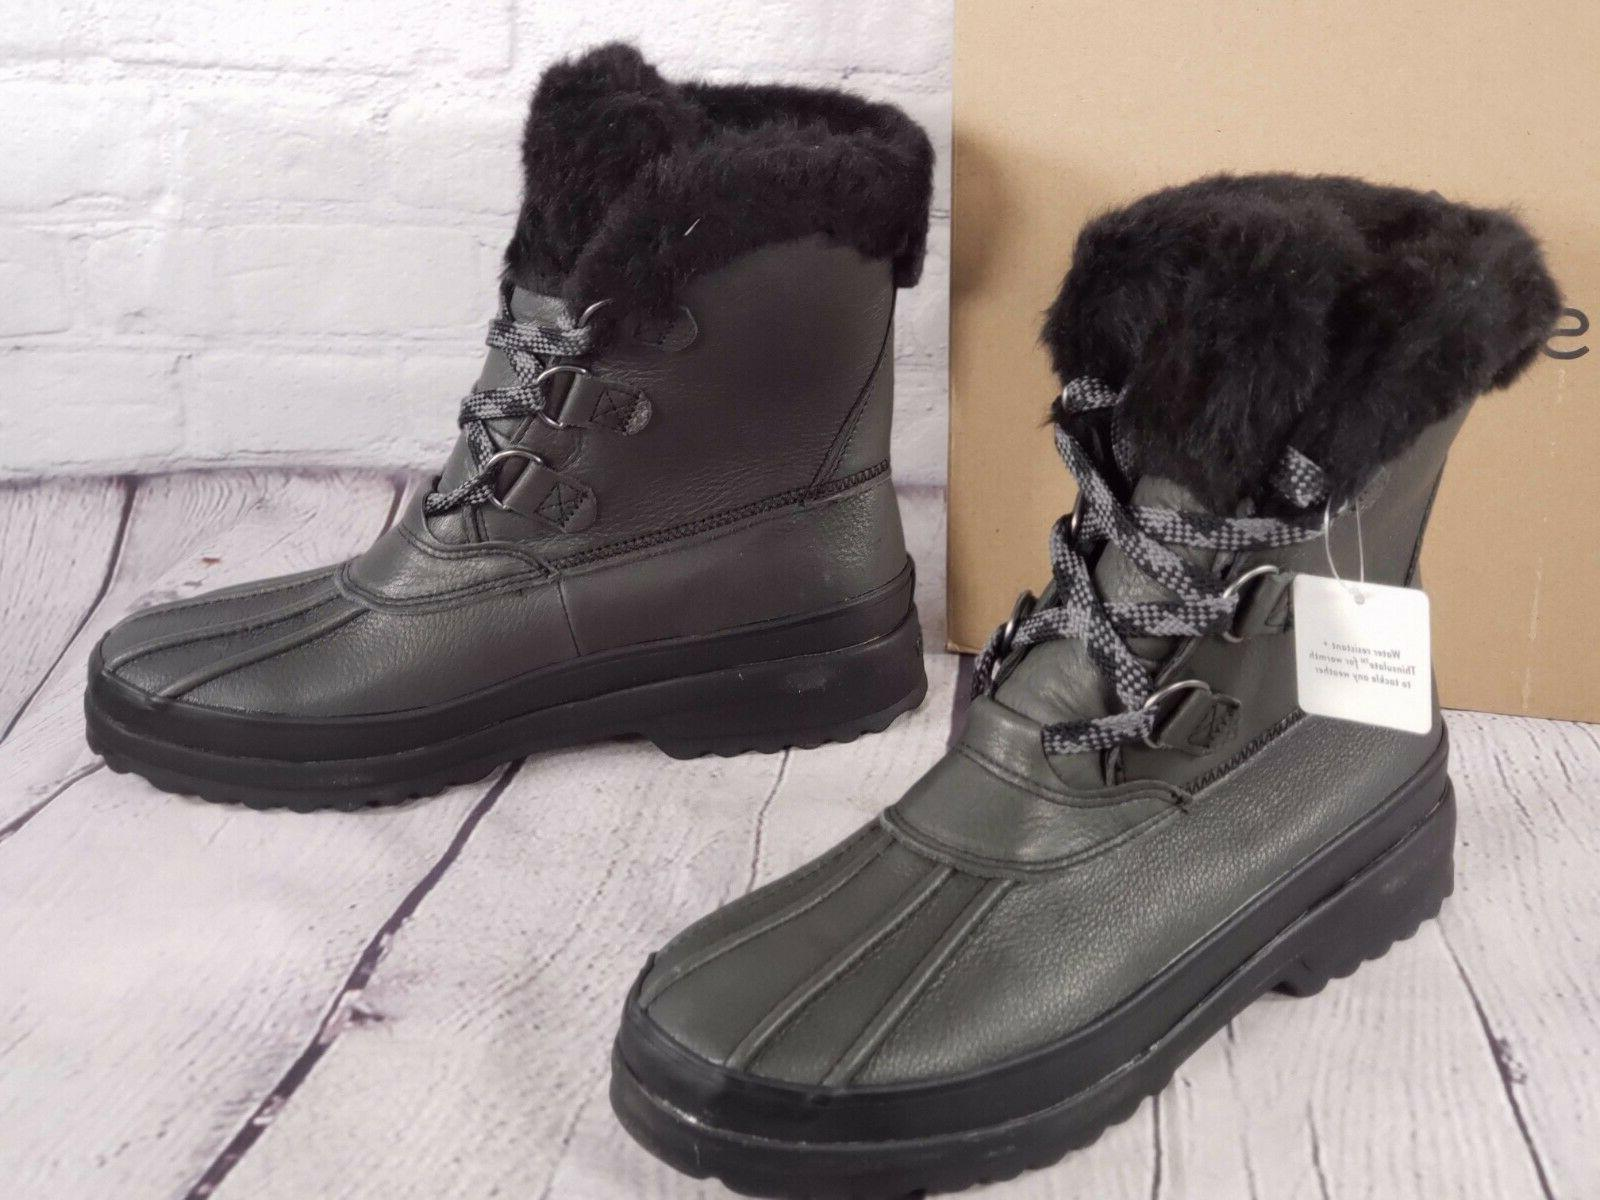 Sperry Winter Boots - Size 8.5